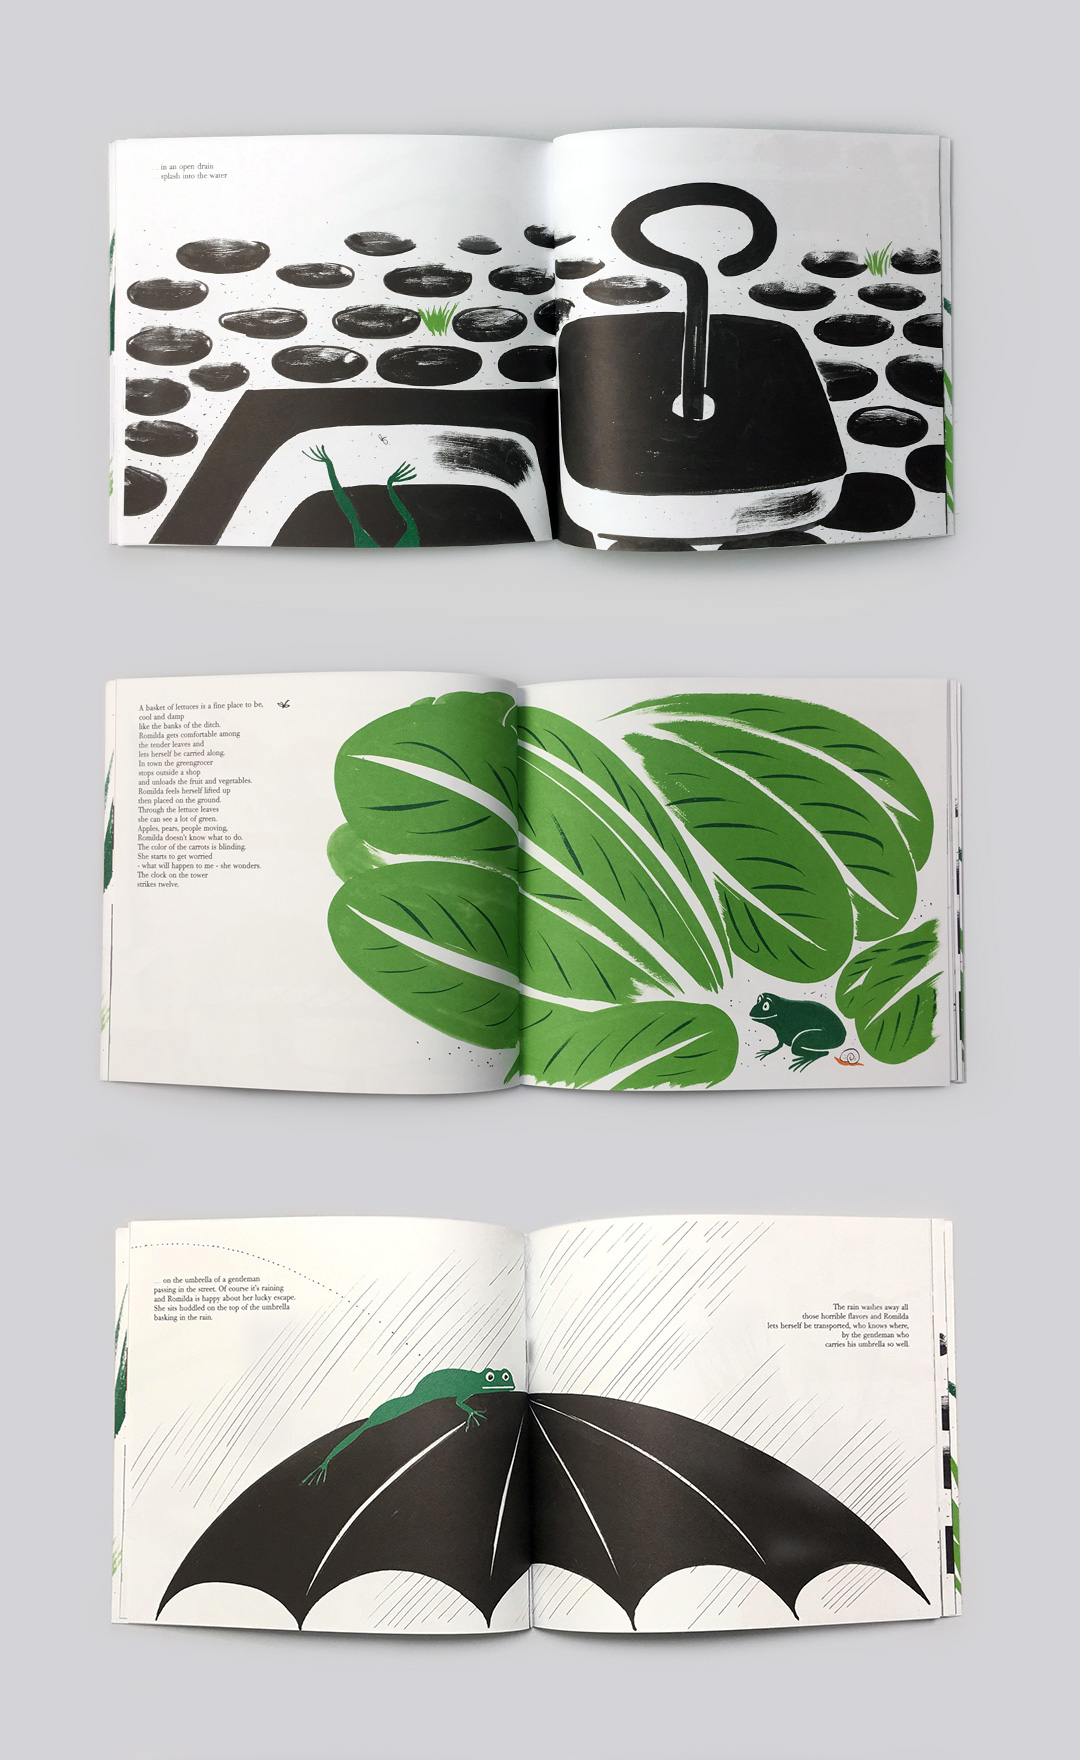 Bruno Munari's children's book - Romilda The Frog